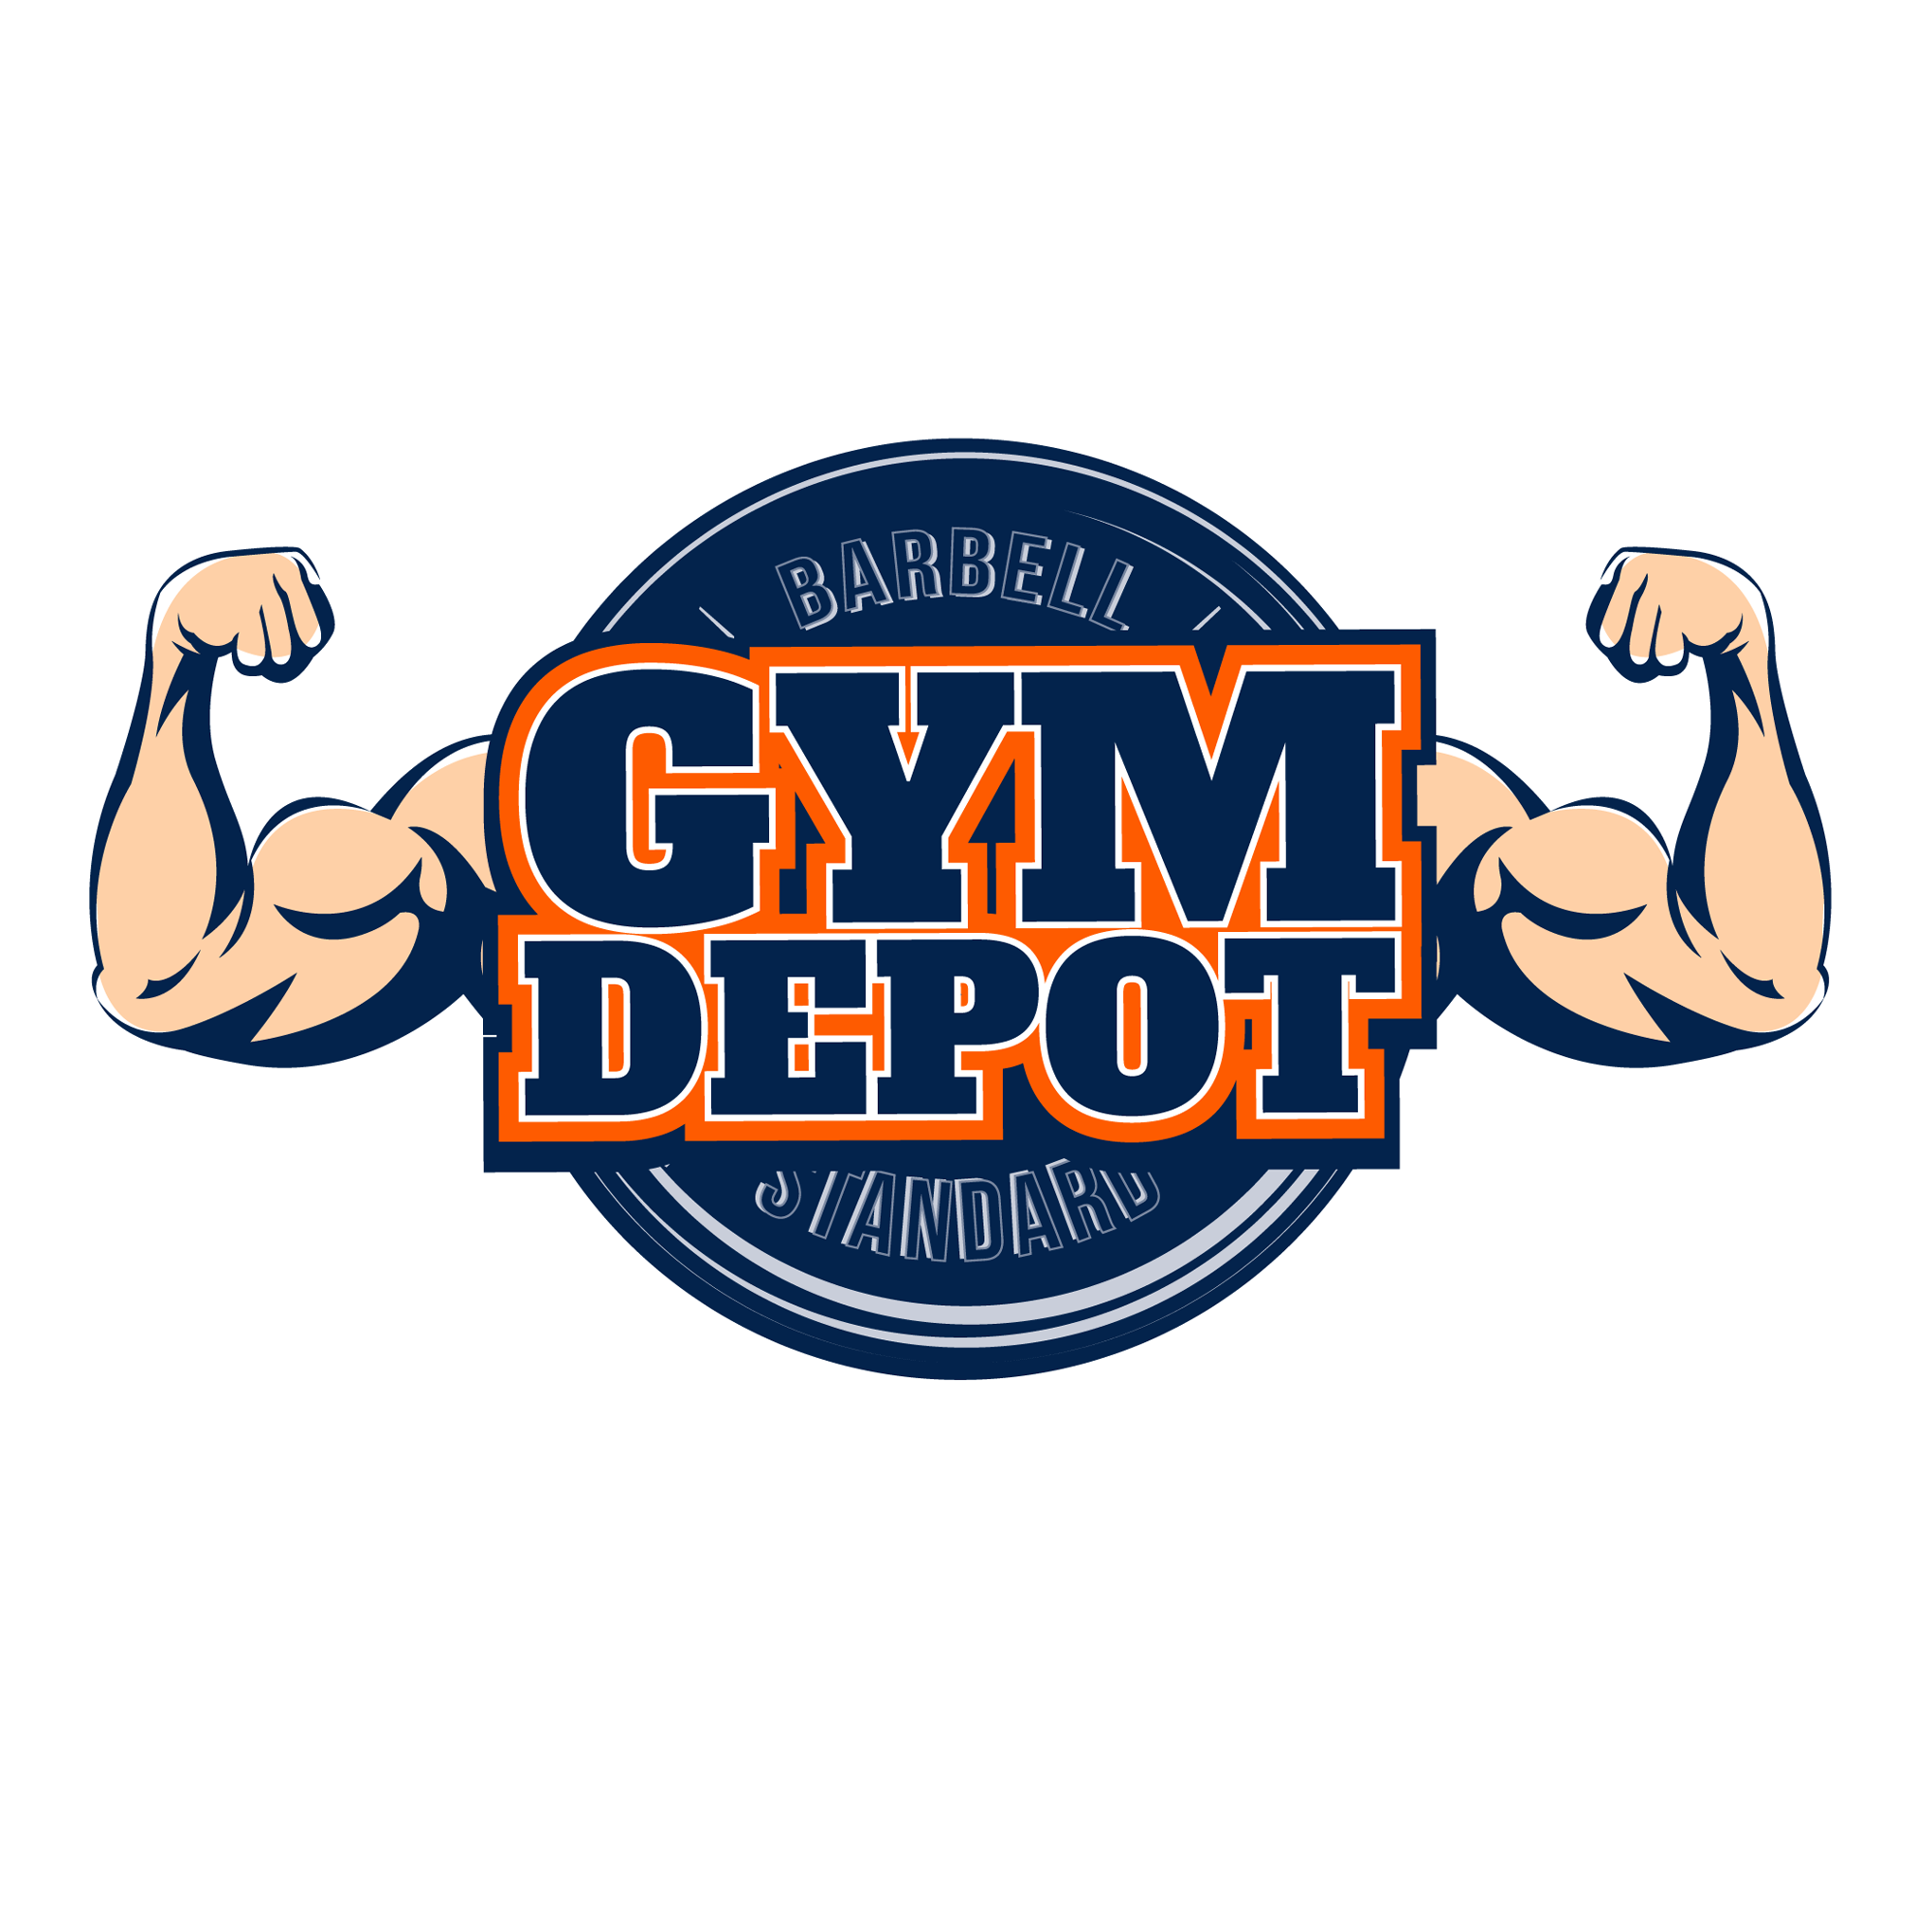 Opportunity to let your creativity shine and help build a brand that pumps people up - Gym Depot